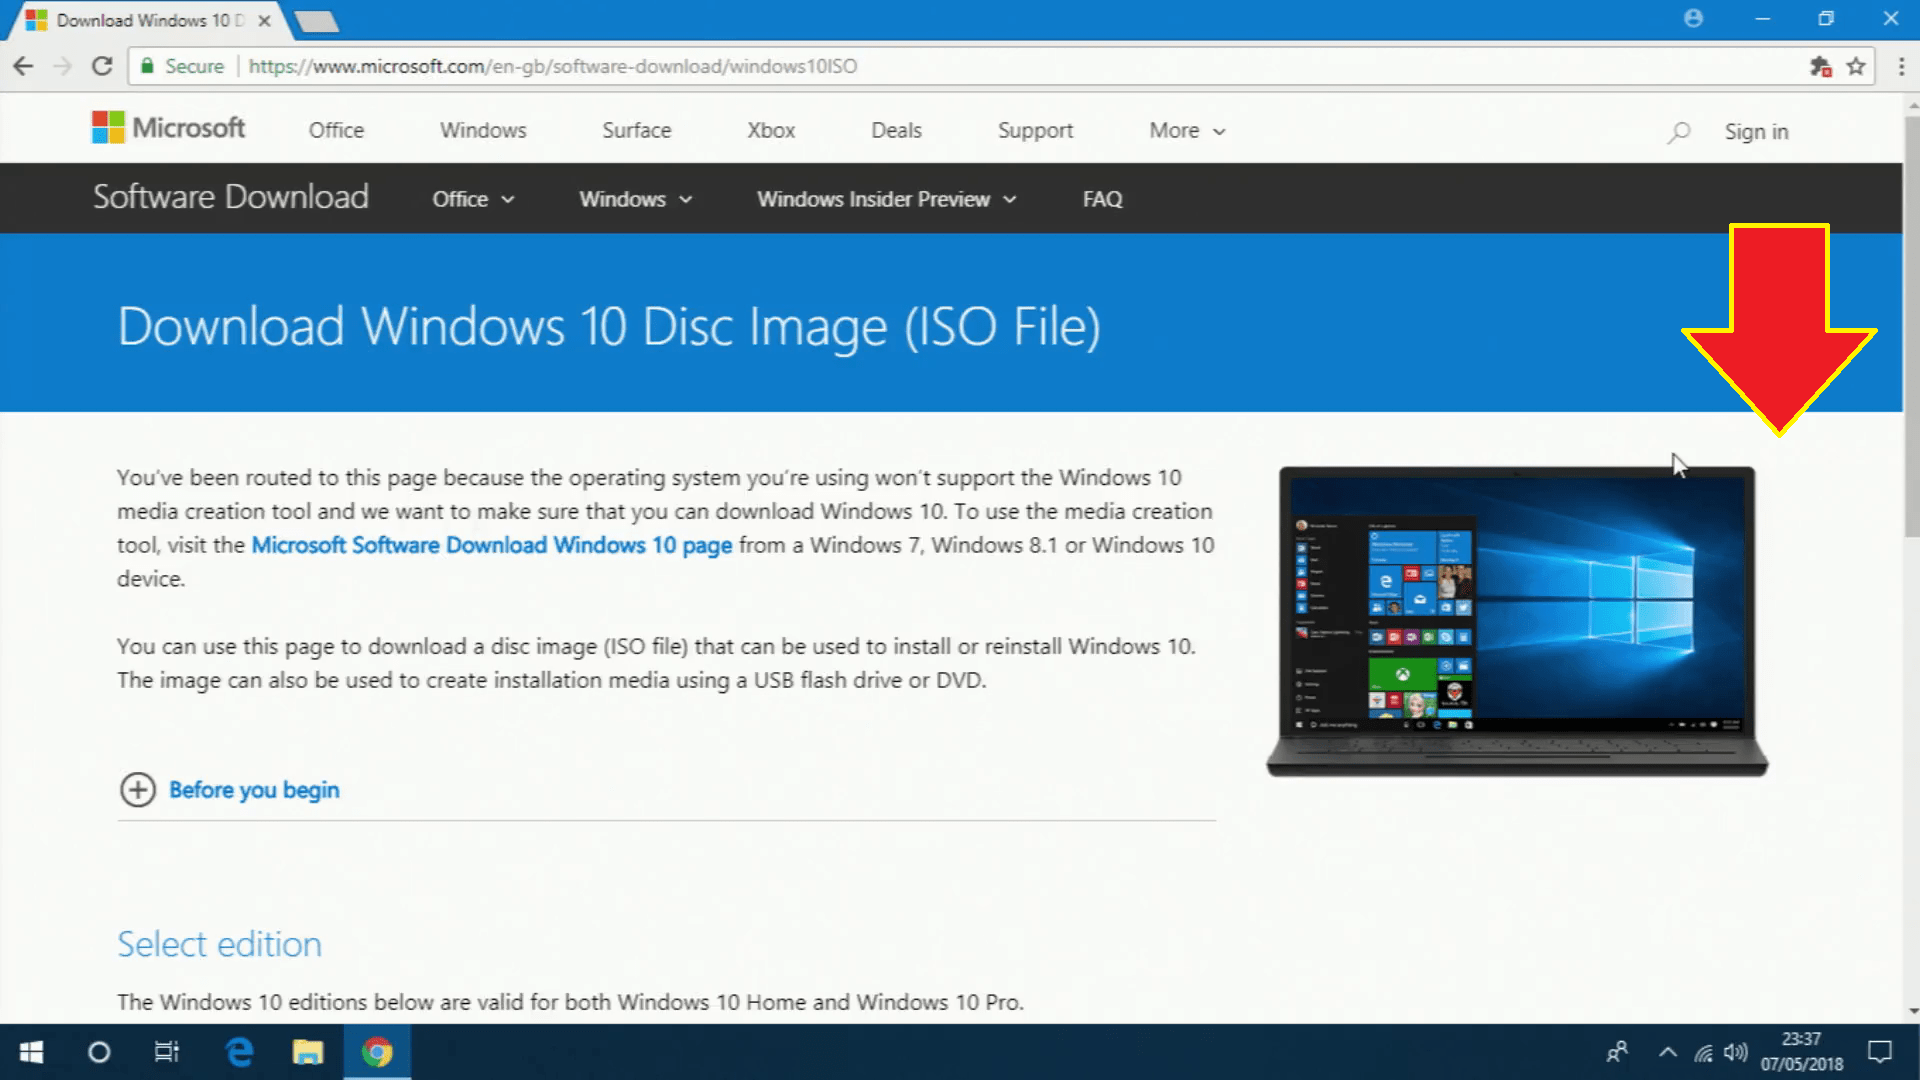 windows 10 1803 iso download microsoft